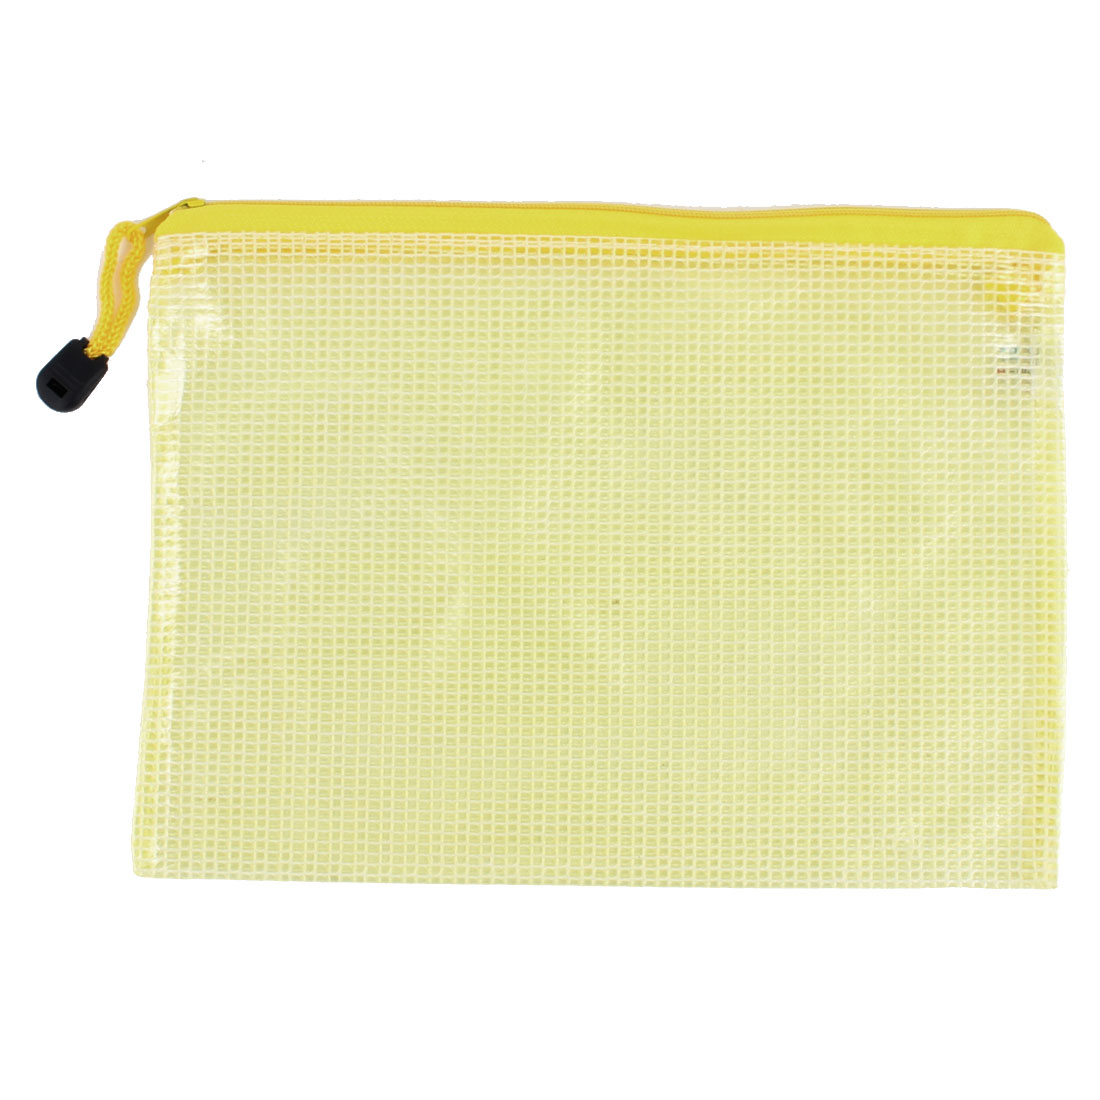 School Office Portable A5 Document File Zipped Folder Holder Bag Yellow